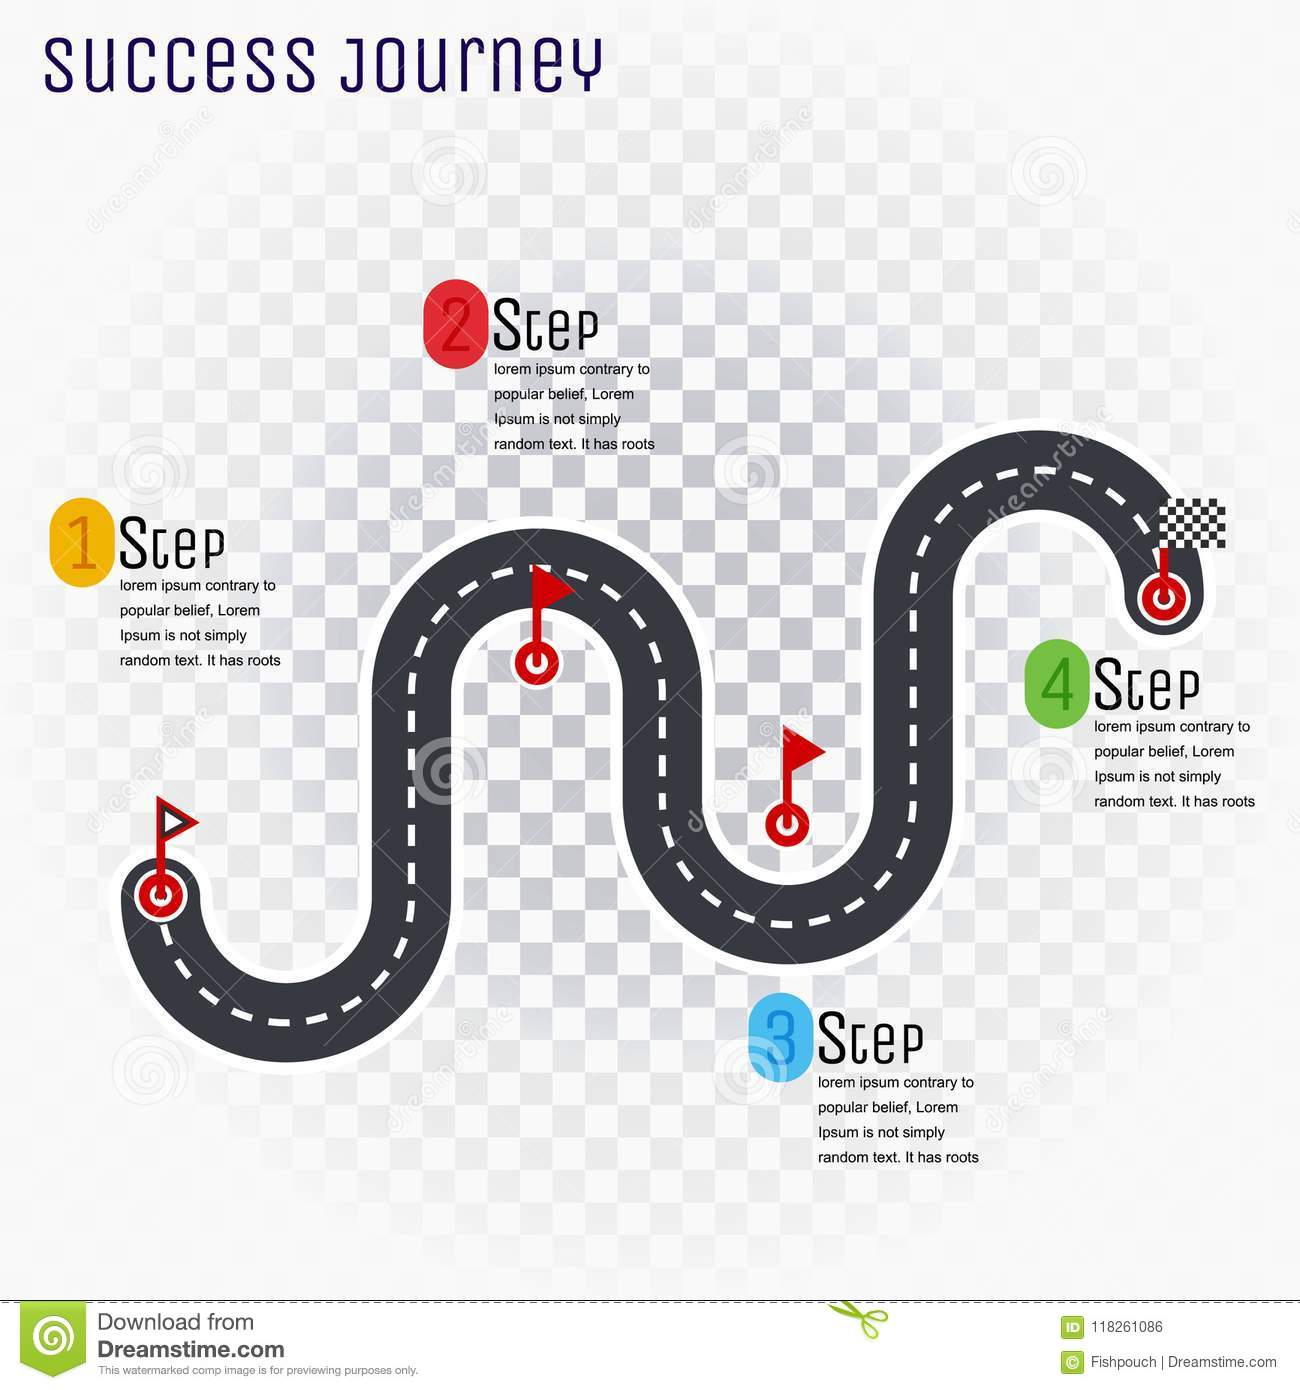 6 Steps To Planning A Successful Building Project: Roadmap Timeline Infographic Design Template, Key Success